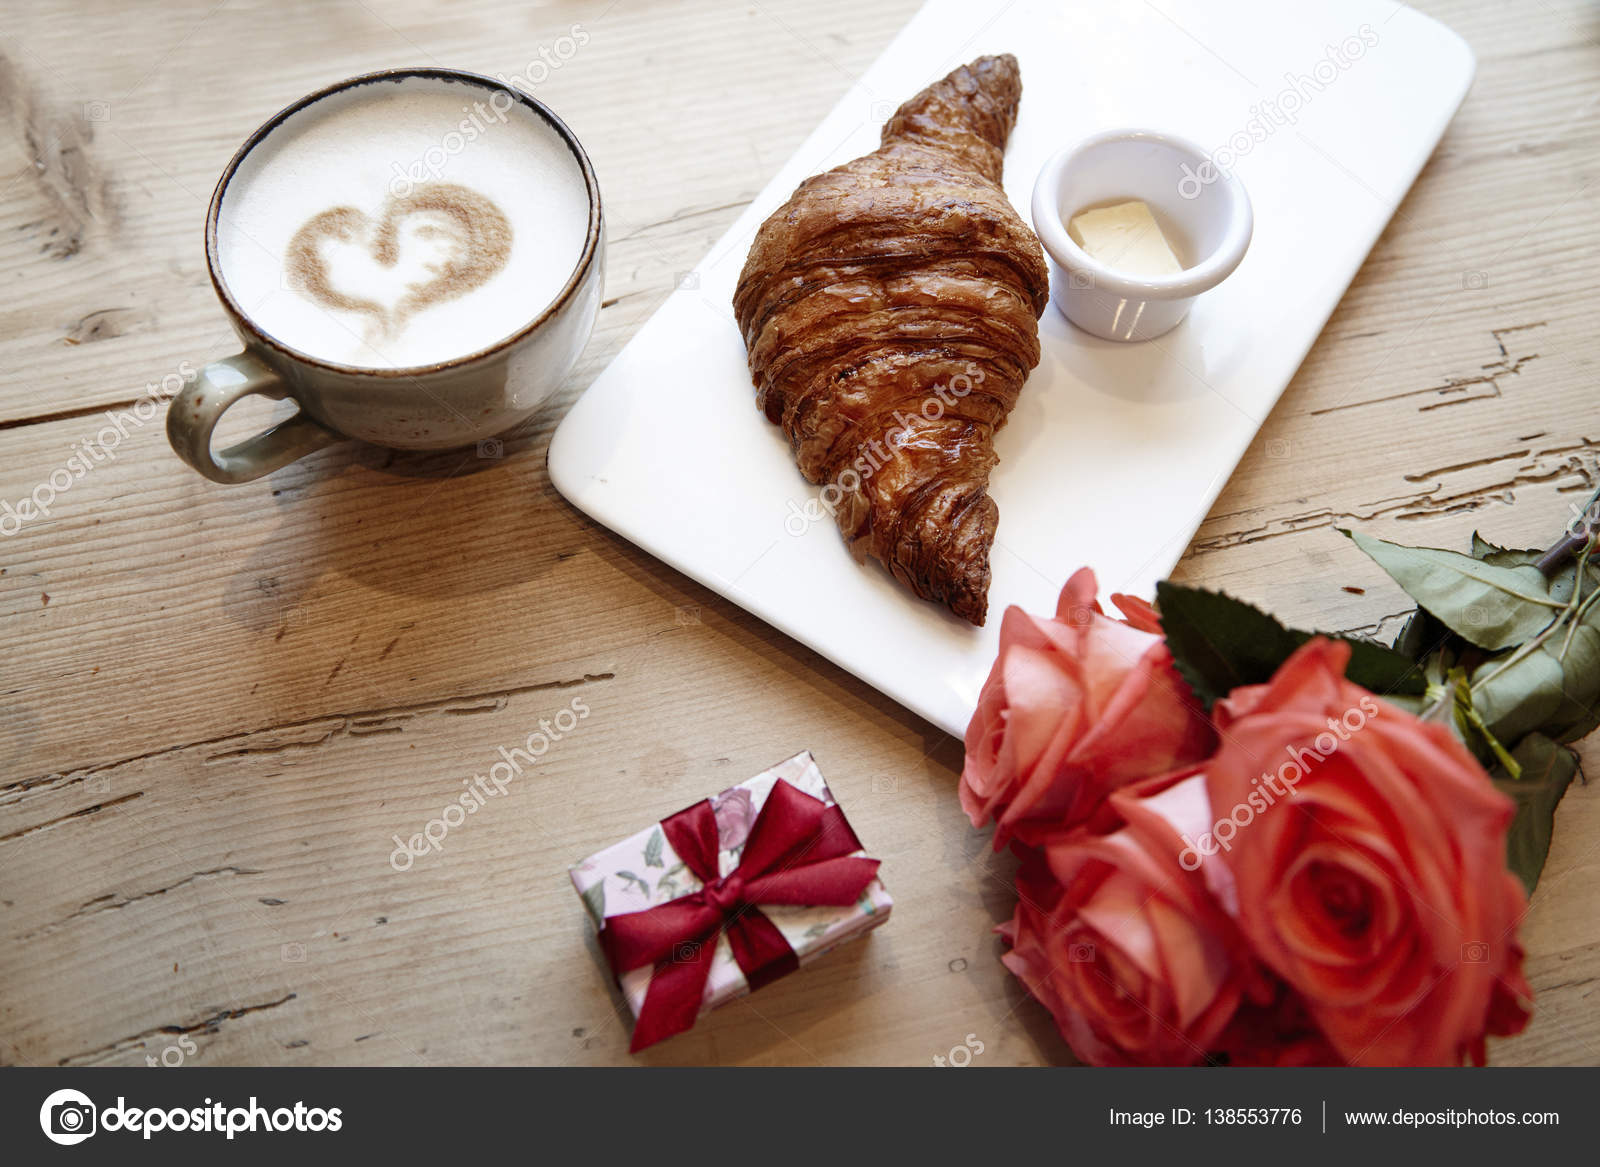 Fresh Bakery Croissant, Coffee With Heart Sign, Rose Flowers On Wooden  Table. Romantic Breakfast For Valentineu0027s Day Celebrate Concept U2014 Photo By  Pogorelova